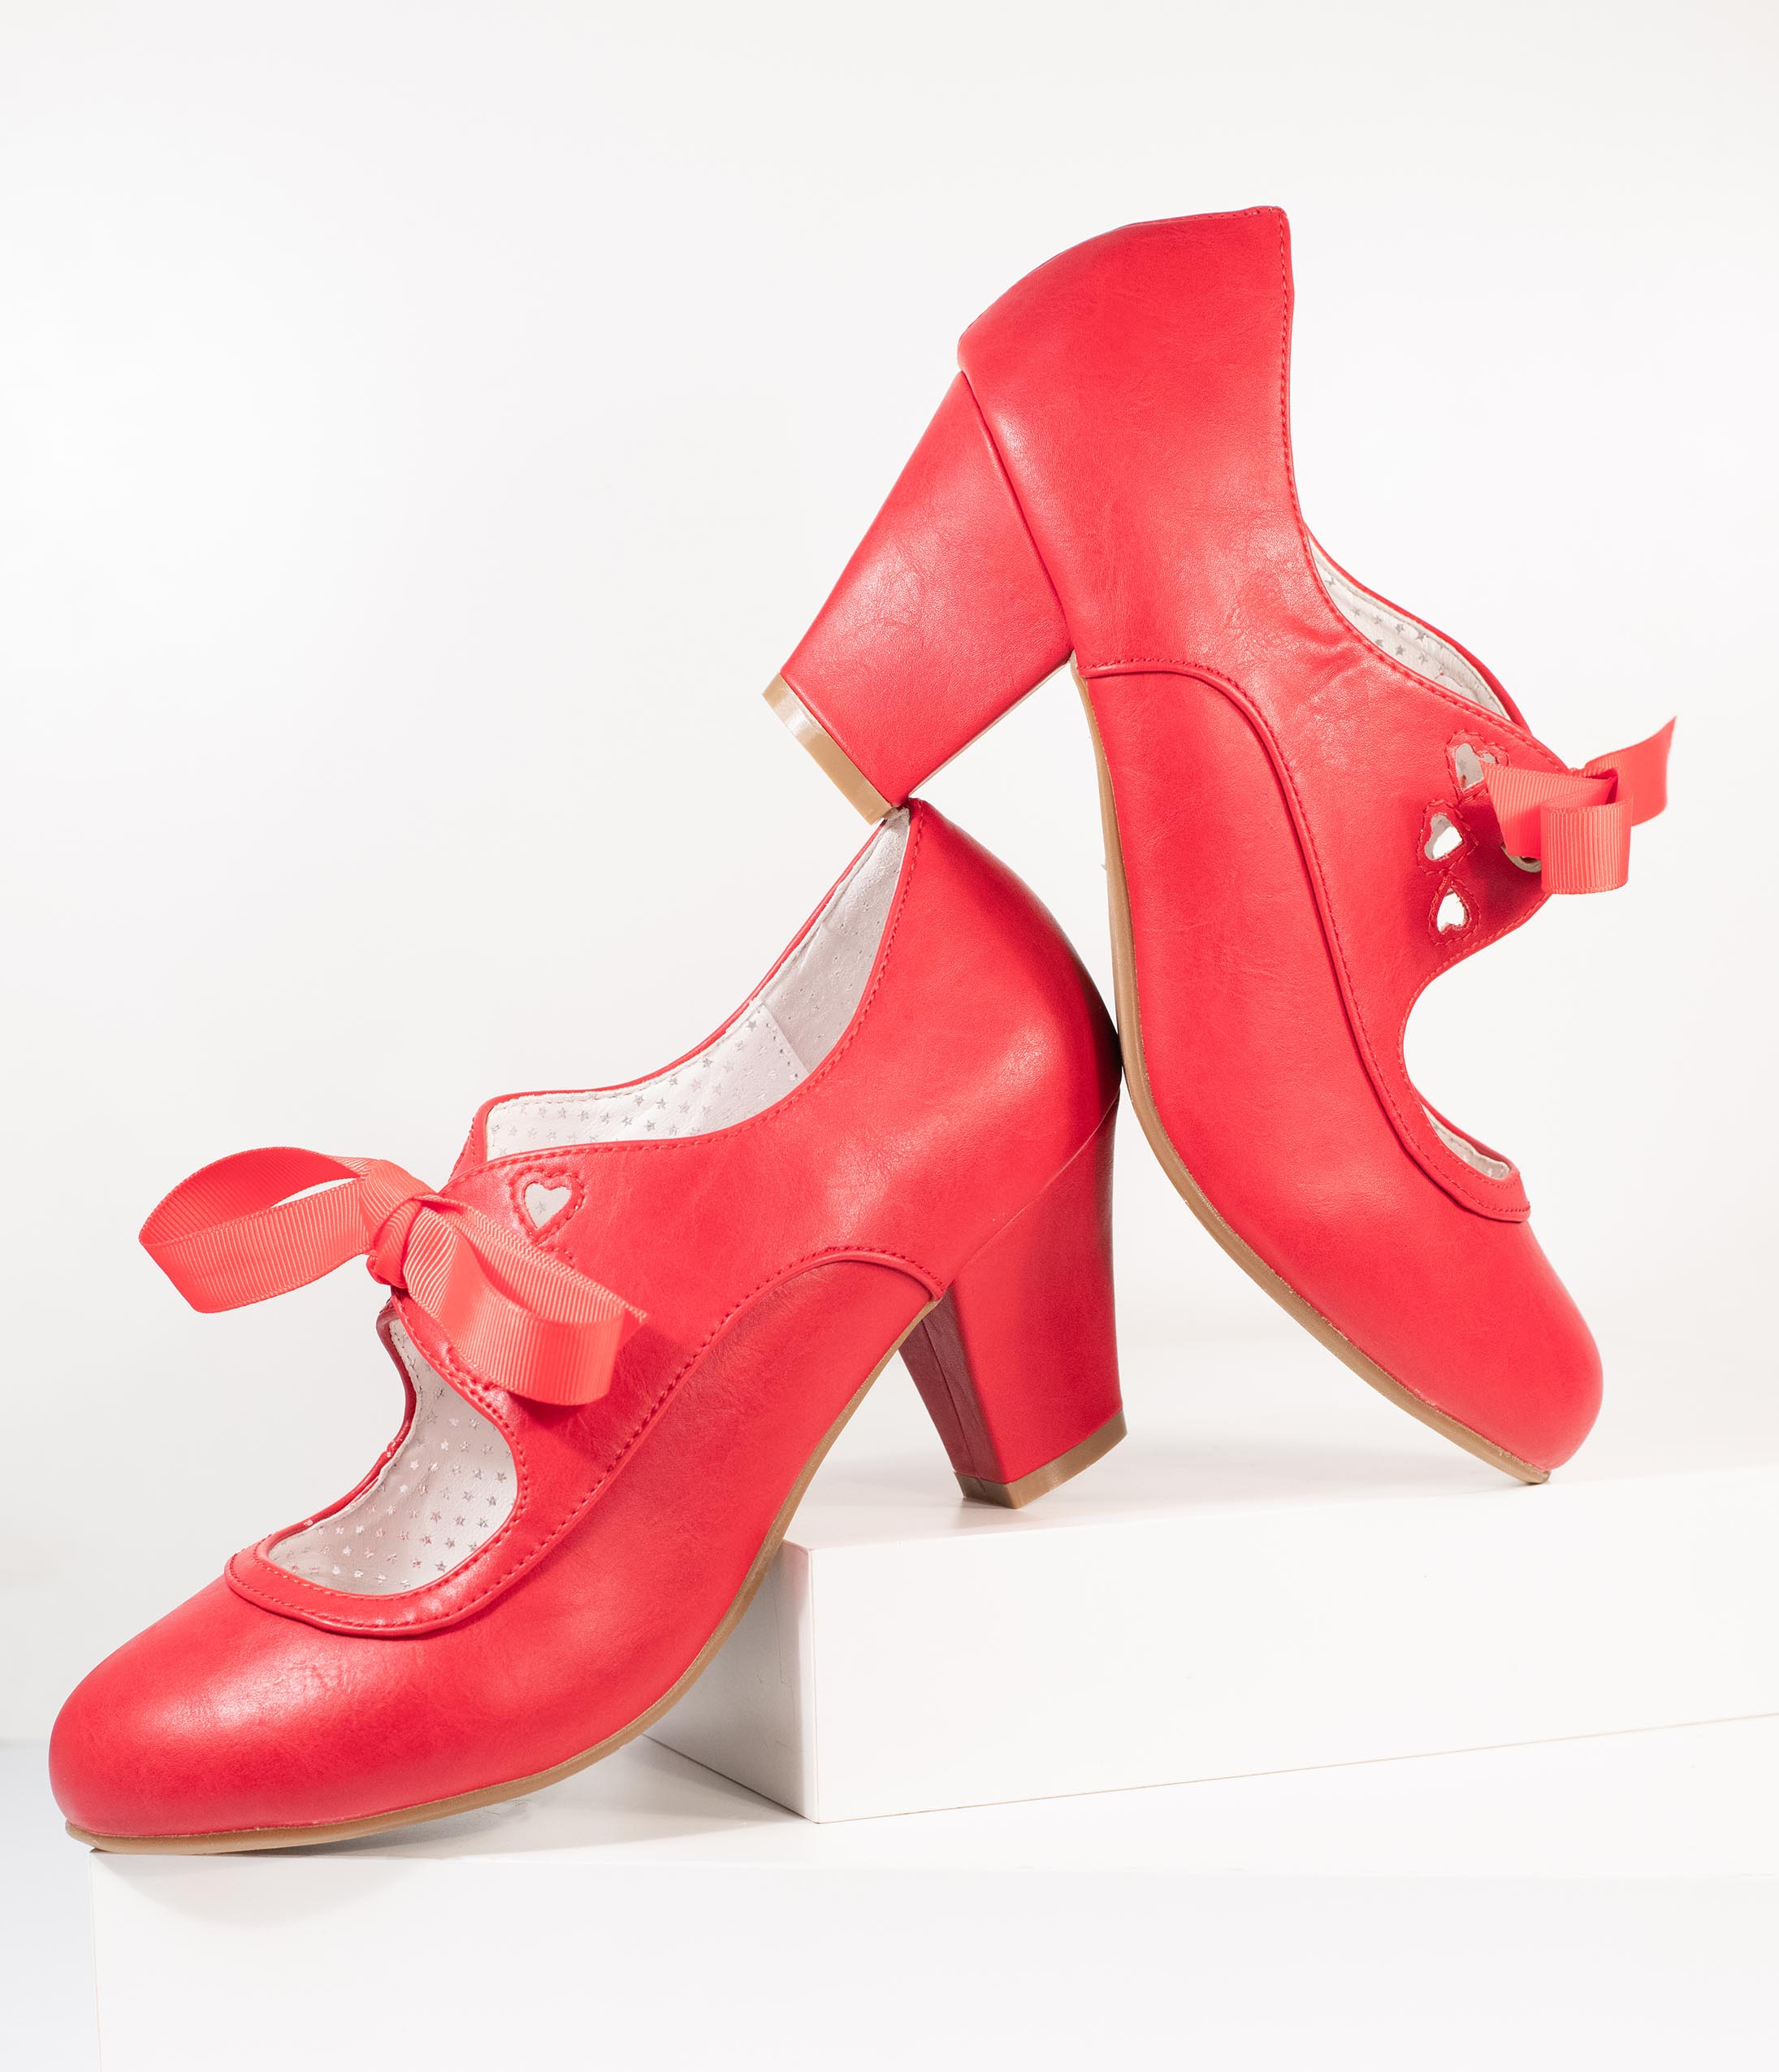 60s Shoes, Boots | 70s Shoes, Platforms, Boots Vintage Style Red Leatherette Wiggle Bow Heels $58.00 AT vintagedancer.com